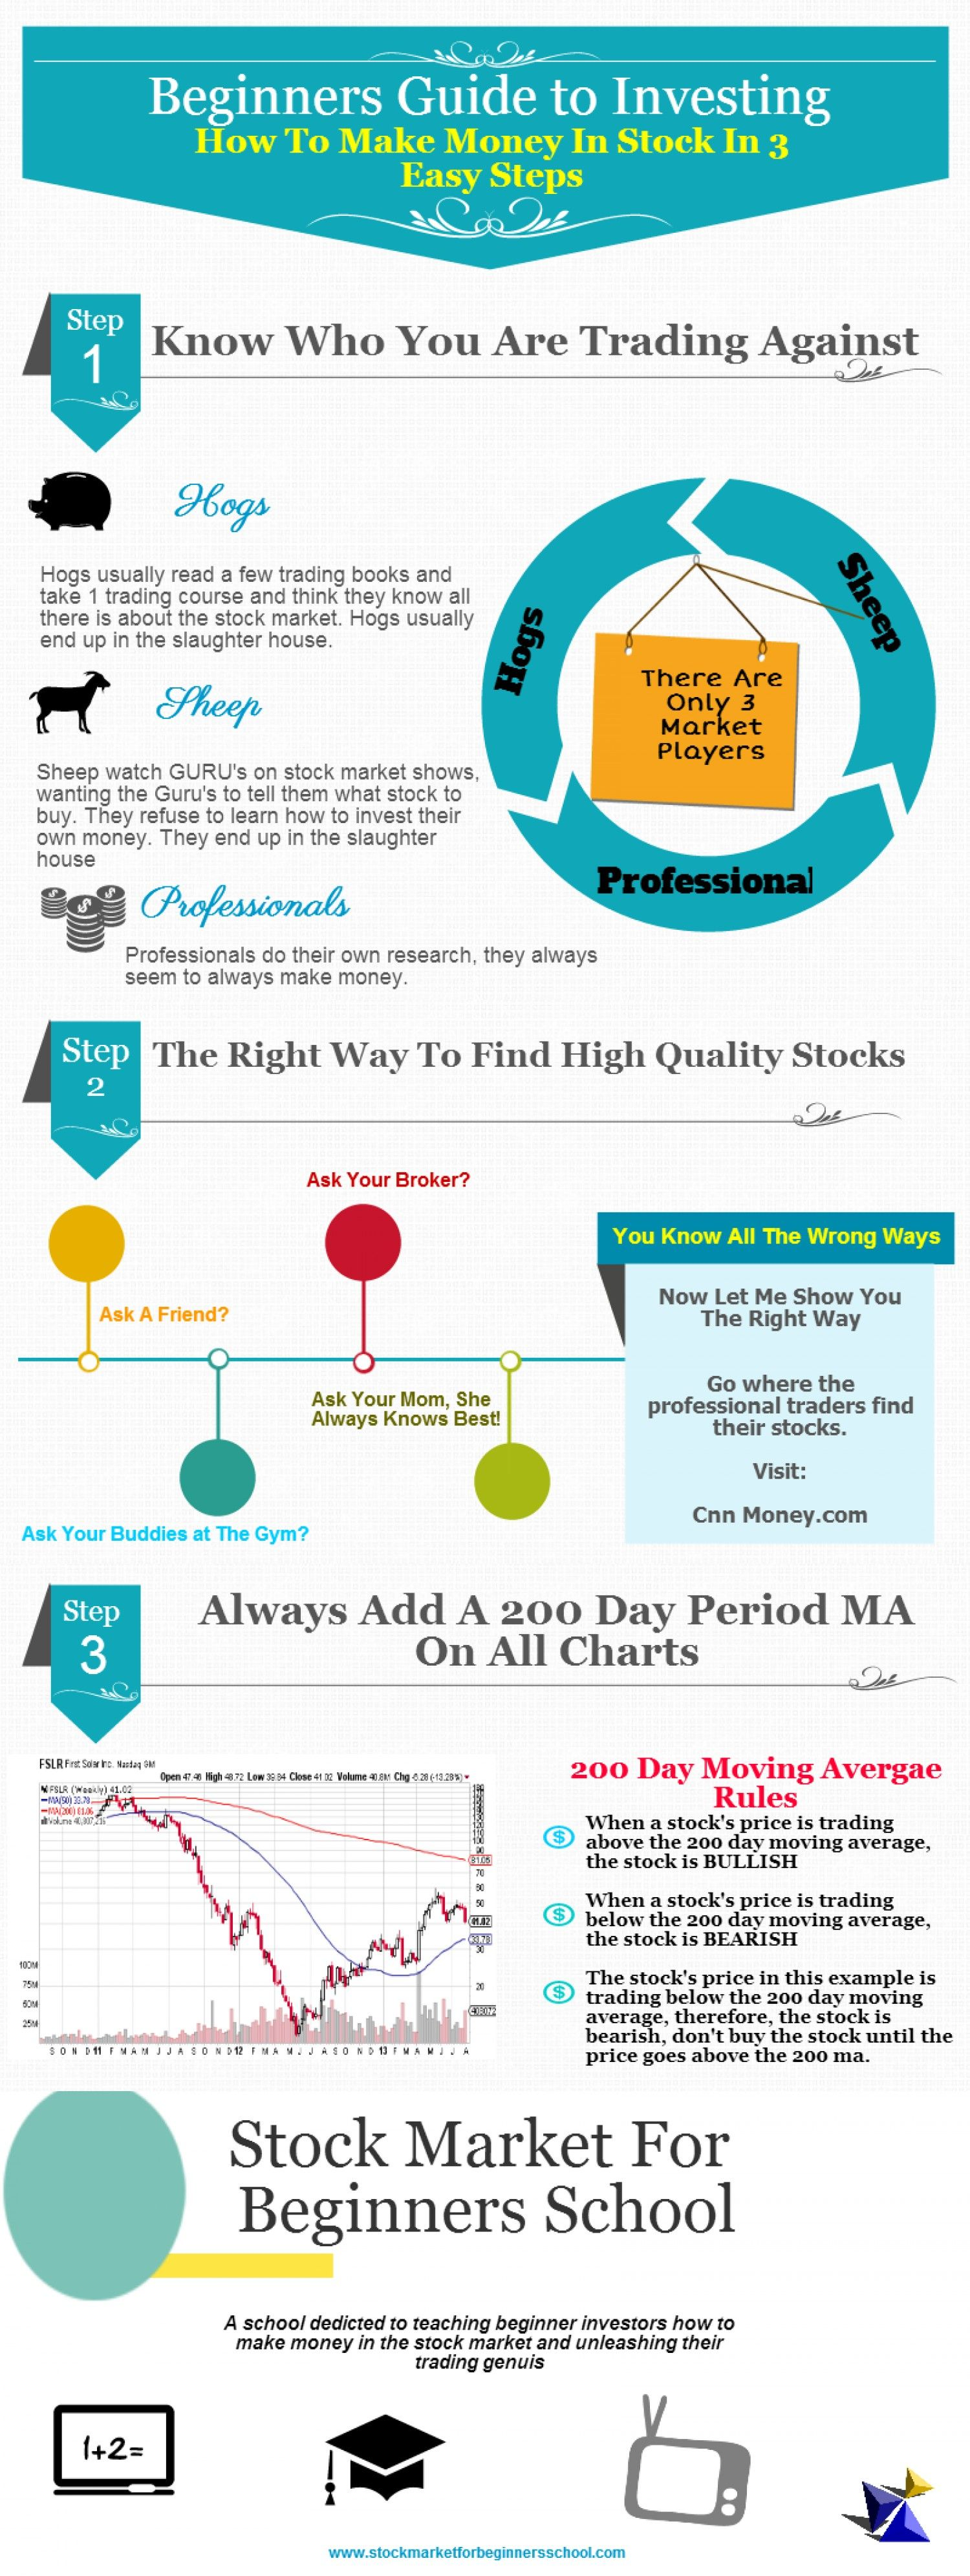 Beginners Guide To Investing Infographic Trade Finance